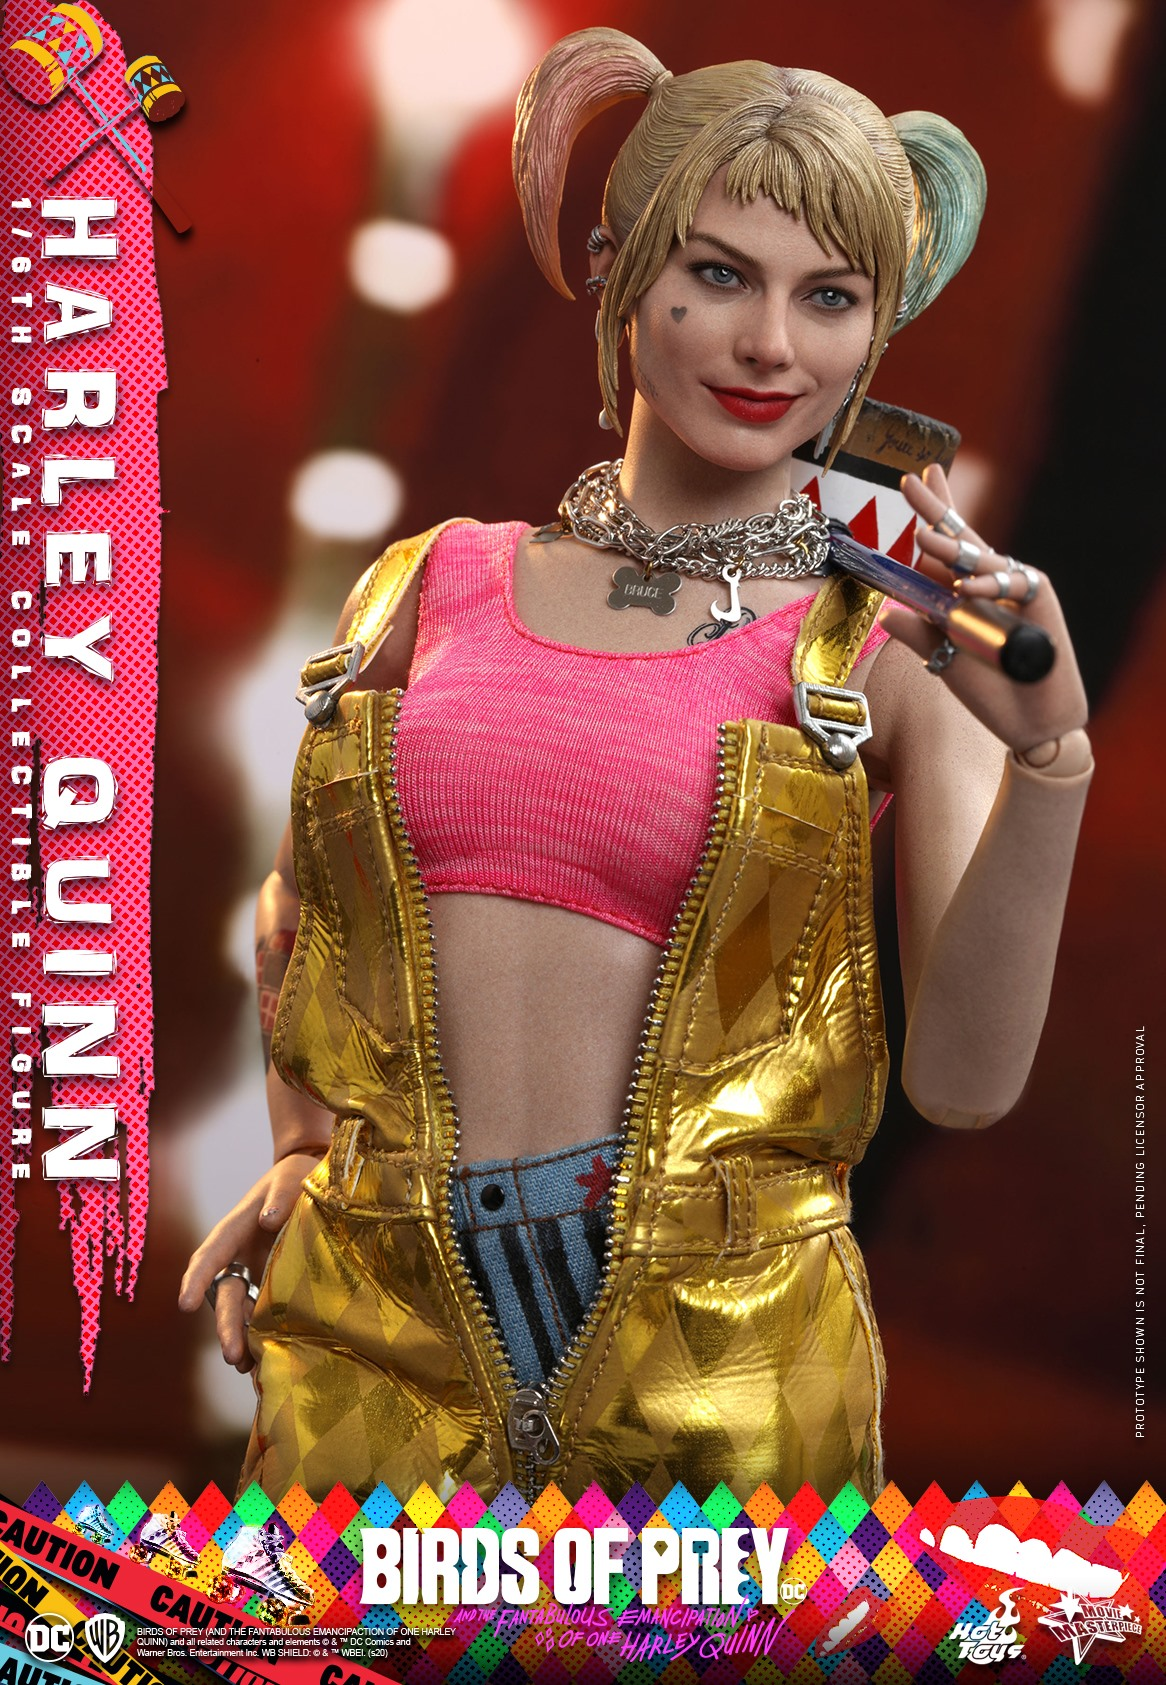 Pre-Order Hot Toys DC Comics Harley Quinn Birds of Prey Figure